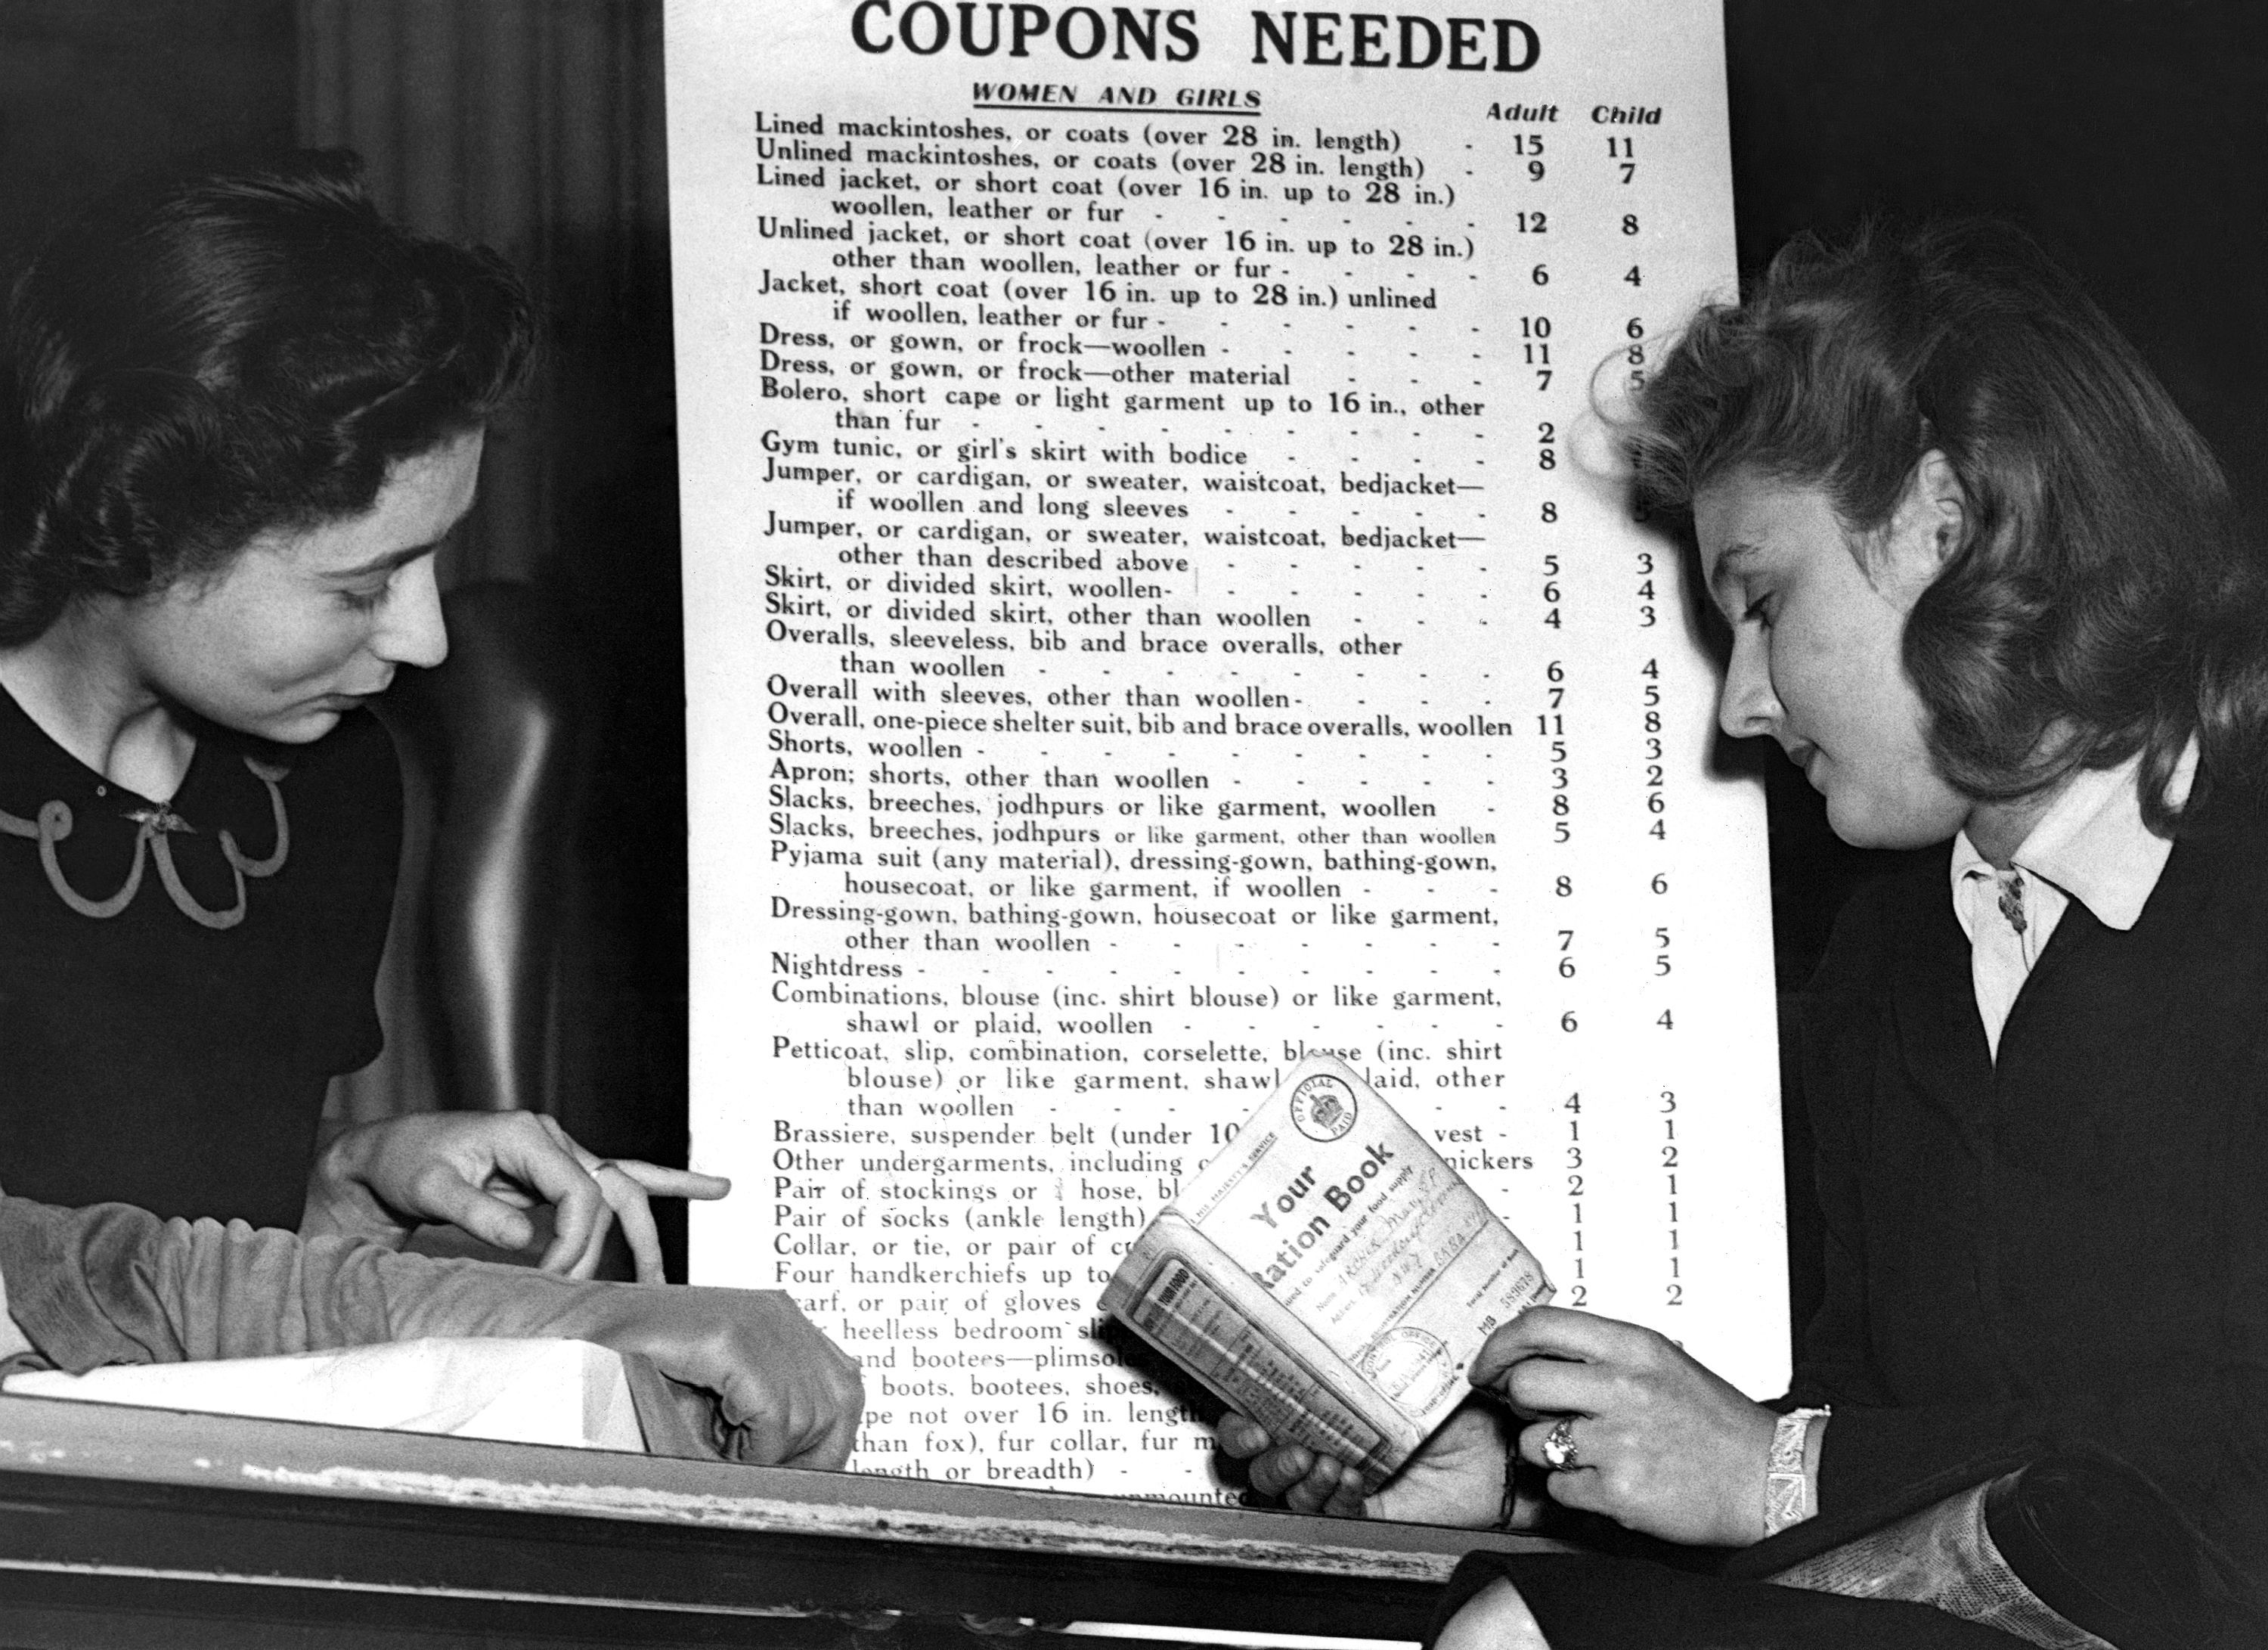 The Rationing Years In Britain